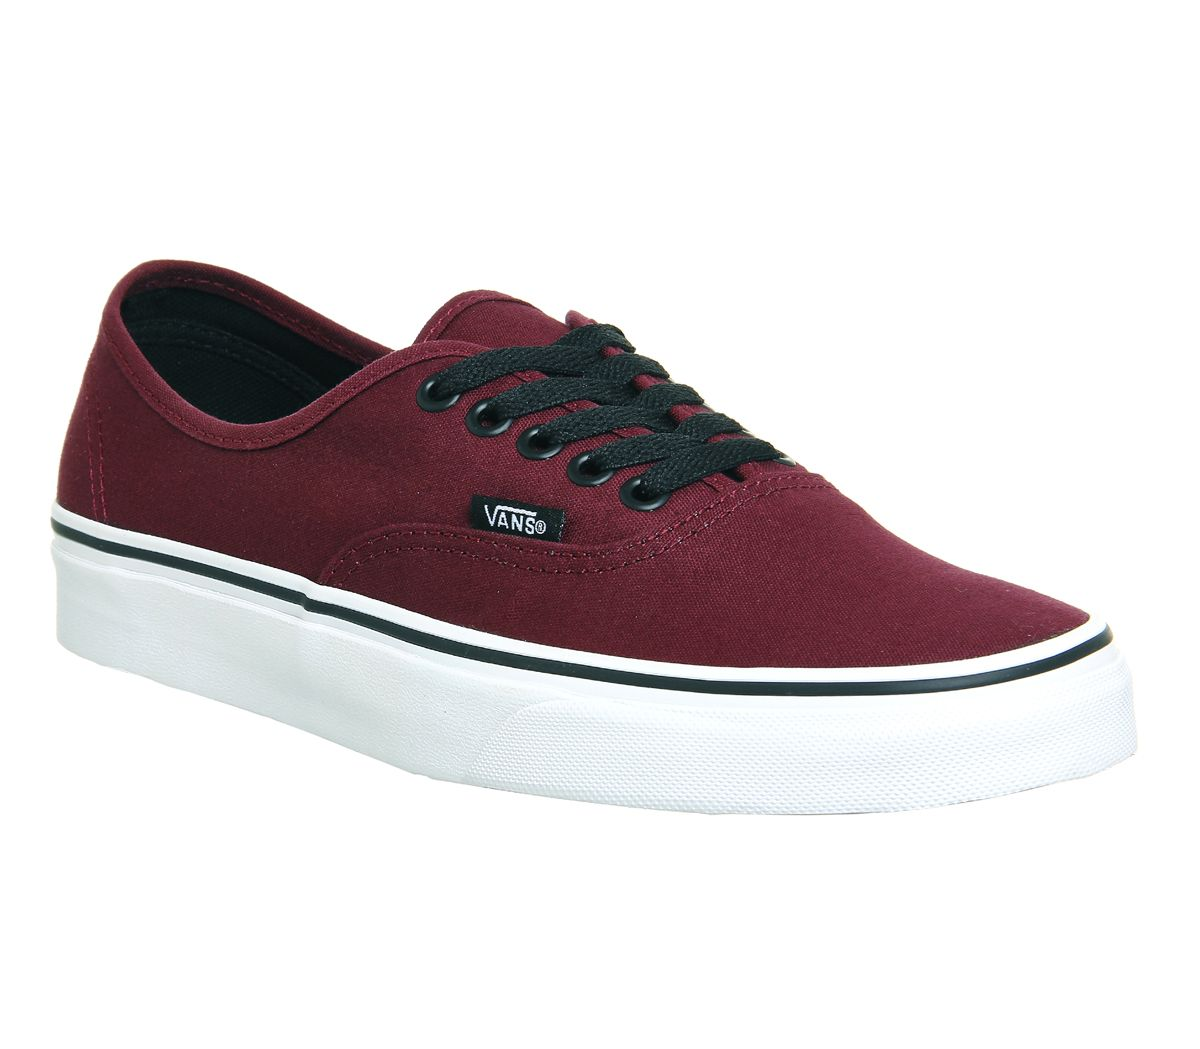 f812869e4c Vans Authentic Port Royale Black - His trainers